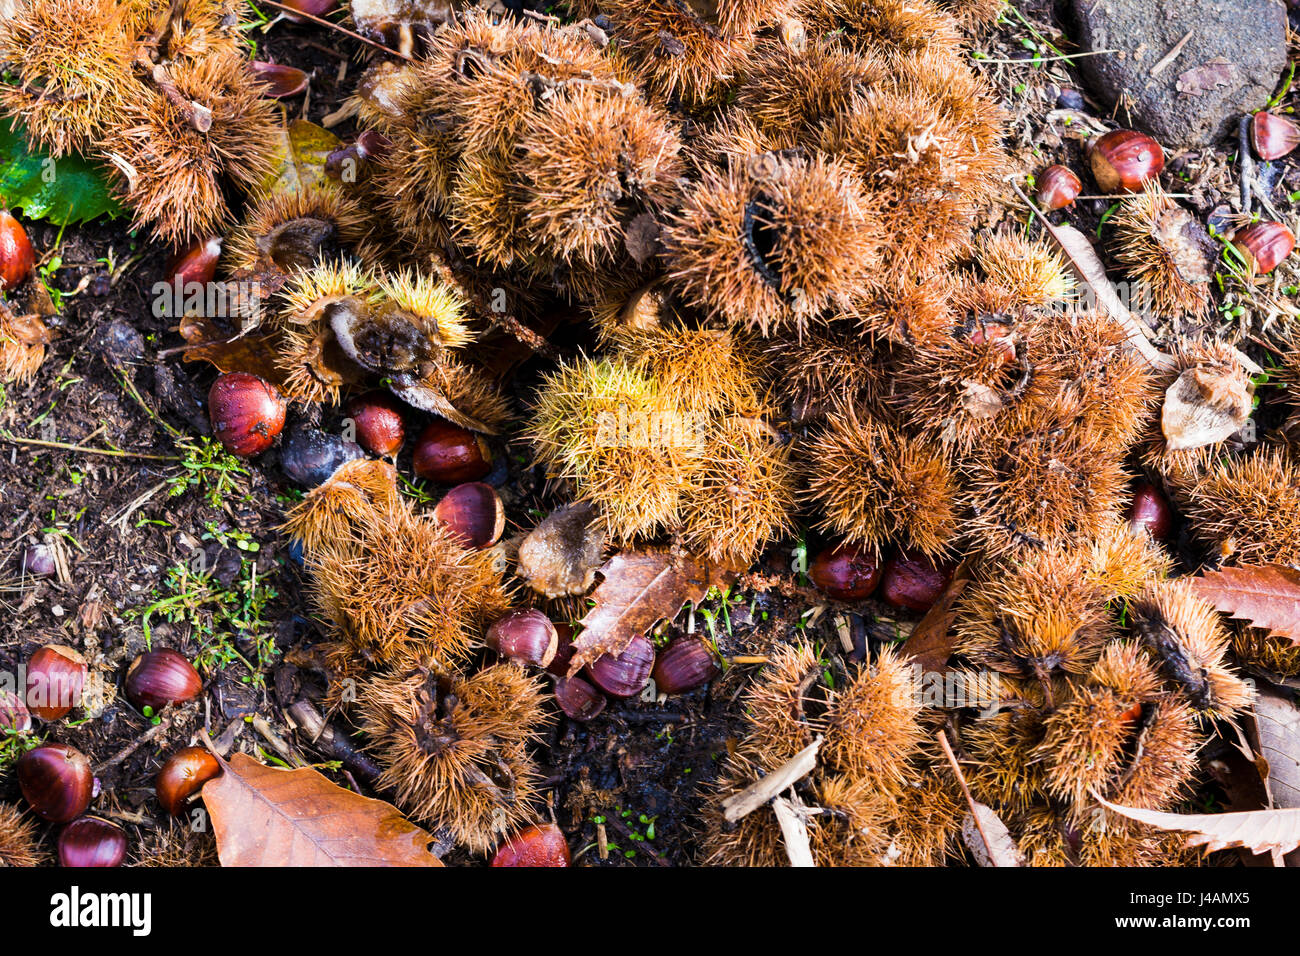 Leaves and chestnut hedgehog fallen on the ground of the autumn chestnut tree. The chestnut forest of El Tiemblo - Stock Image